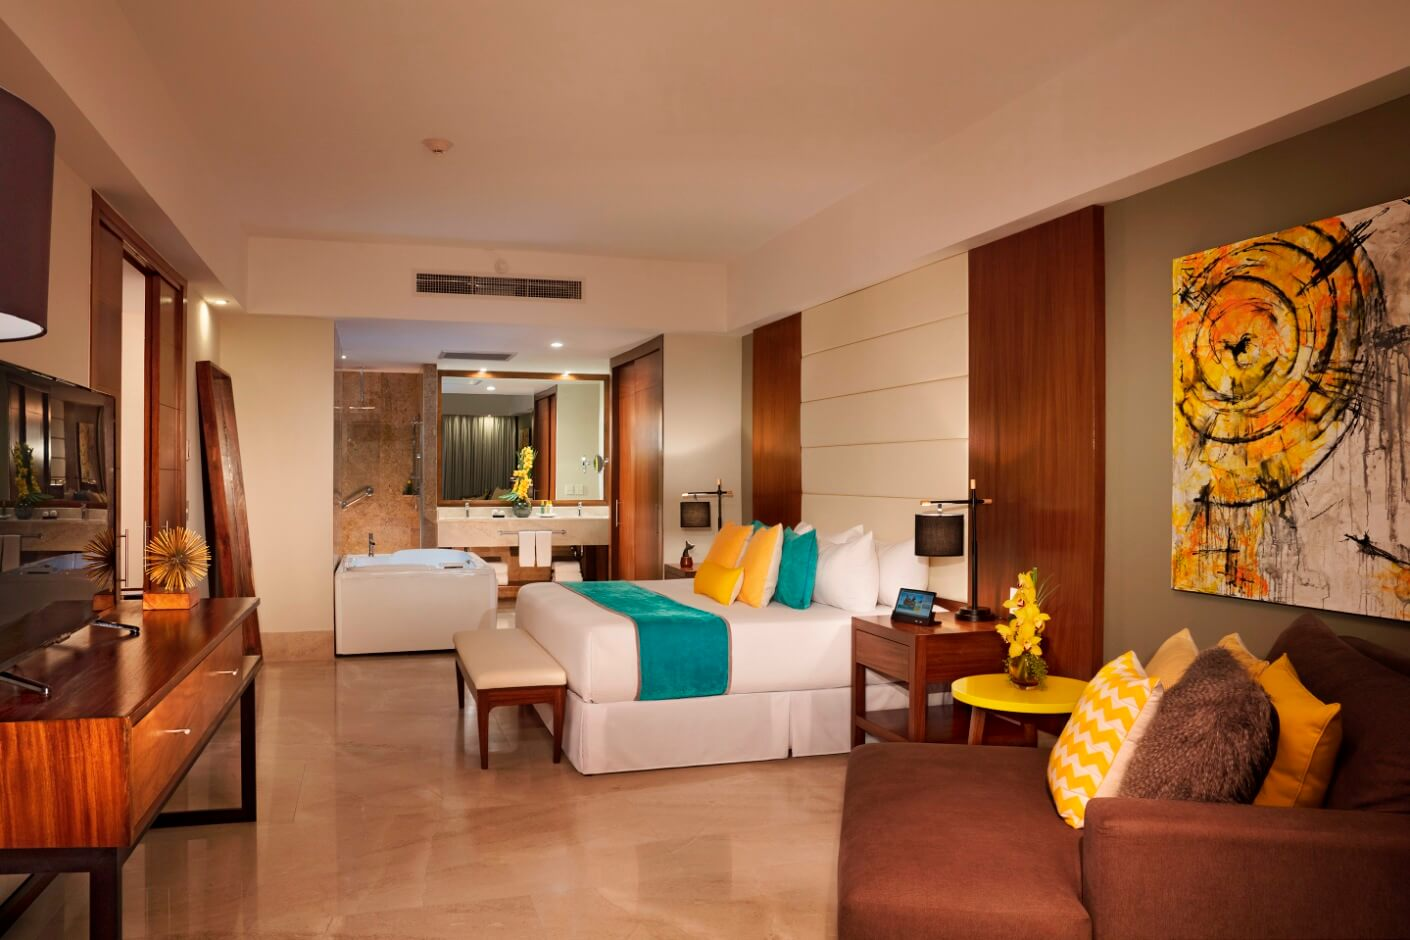 large hotel room with couch, dining table and separate bedroom